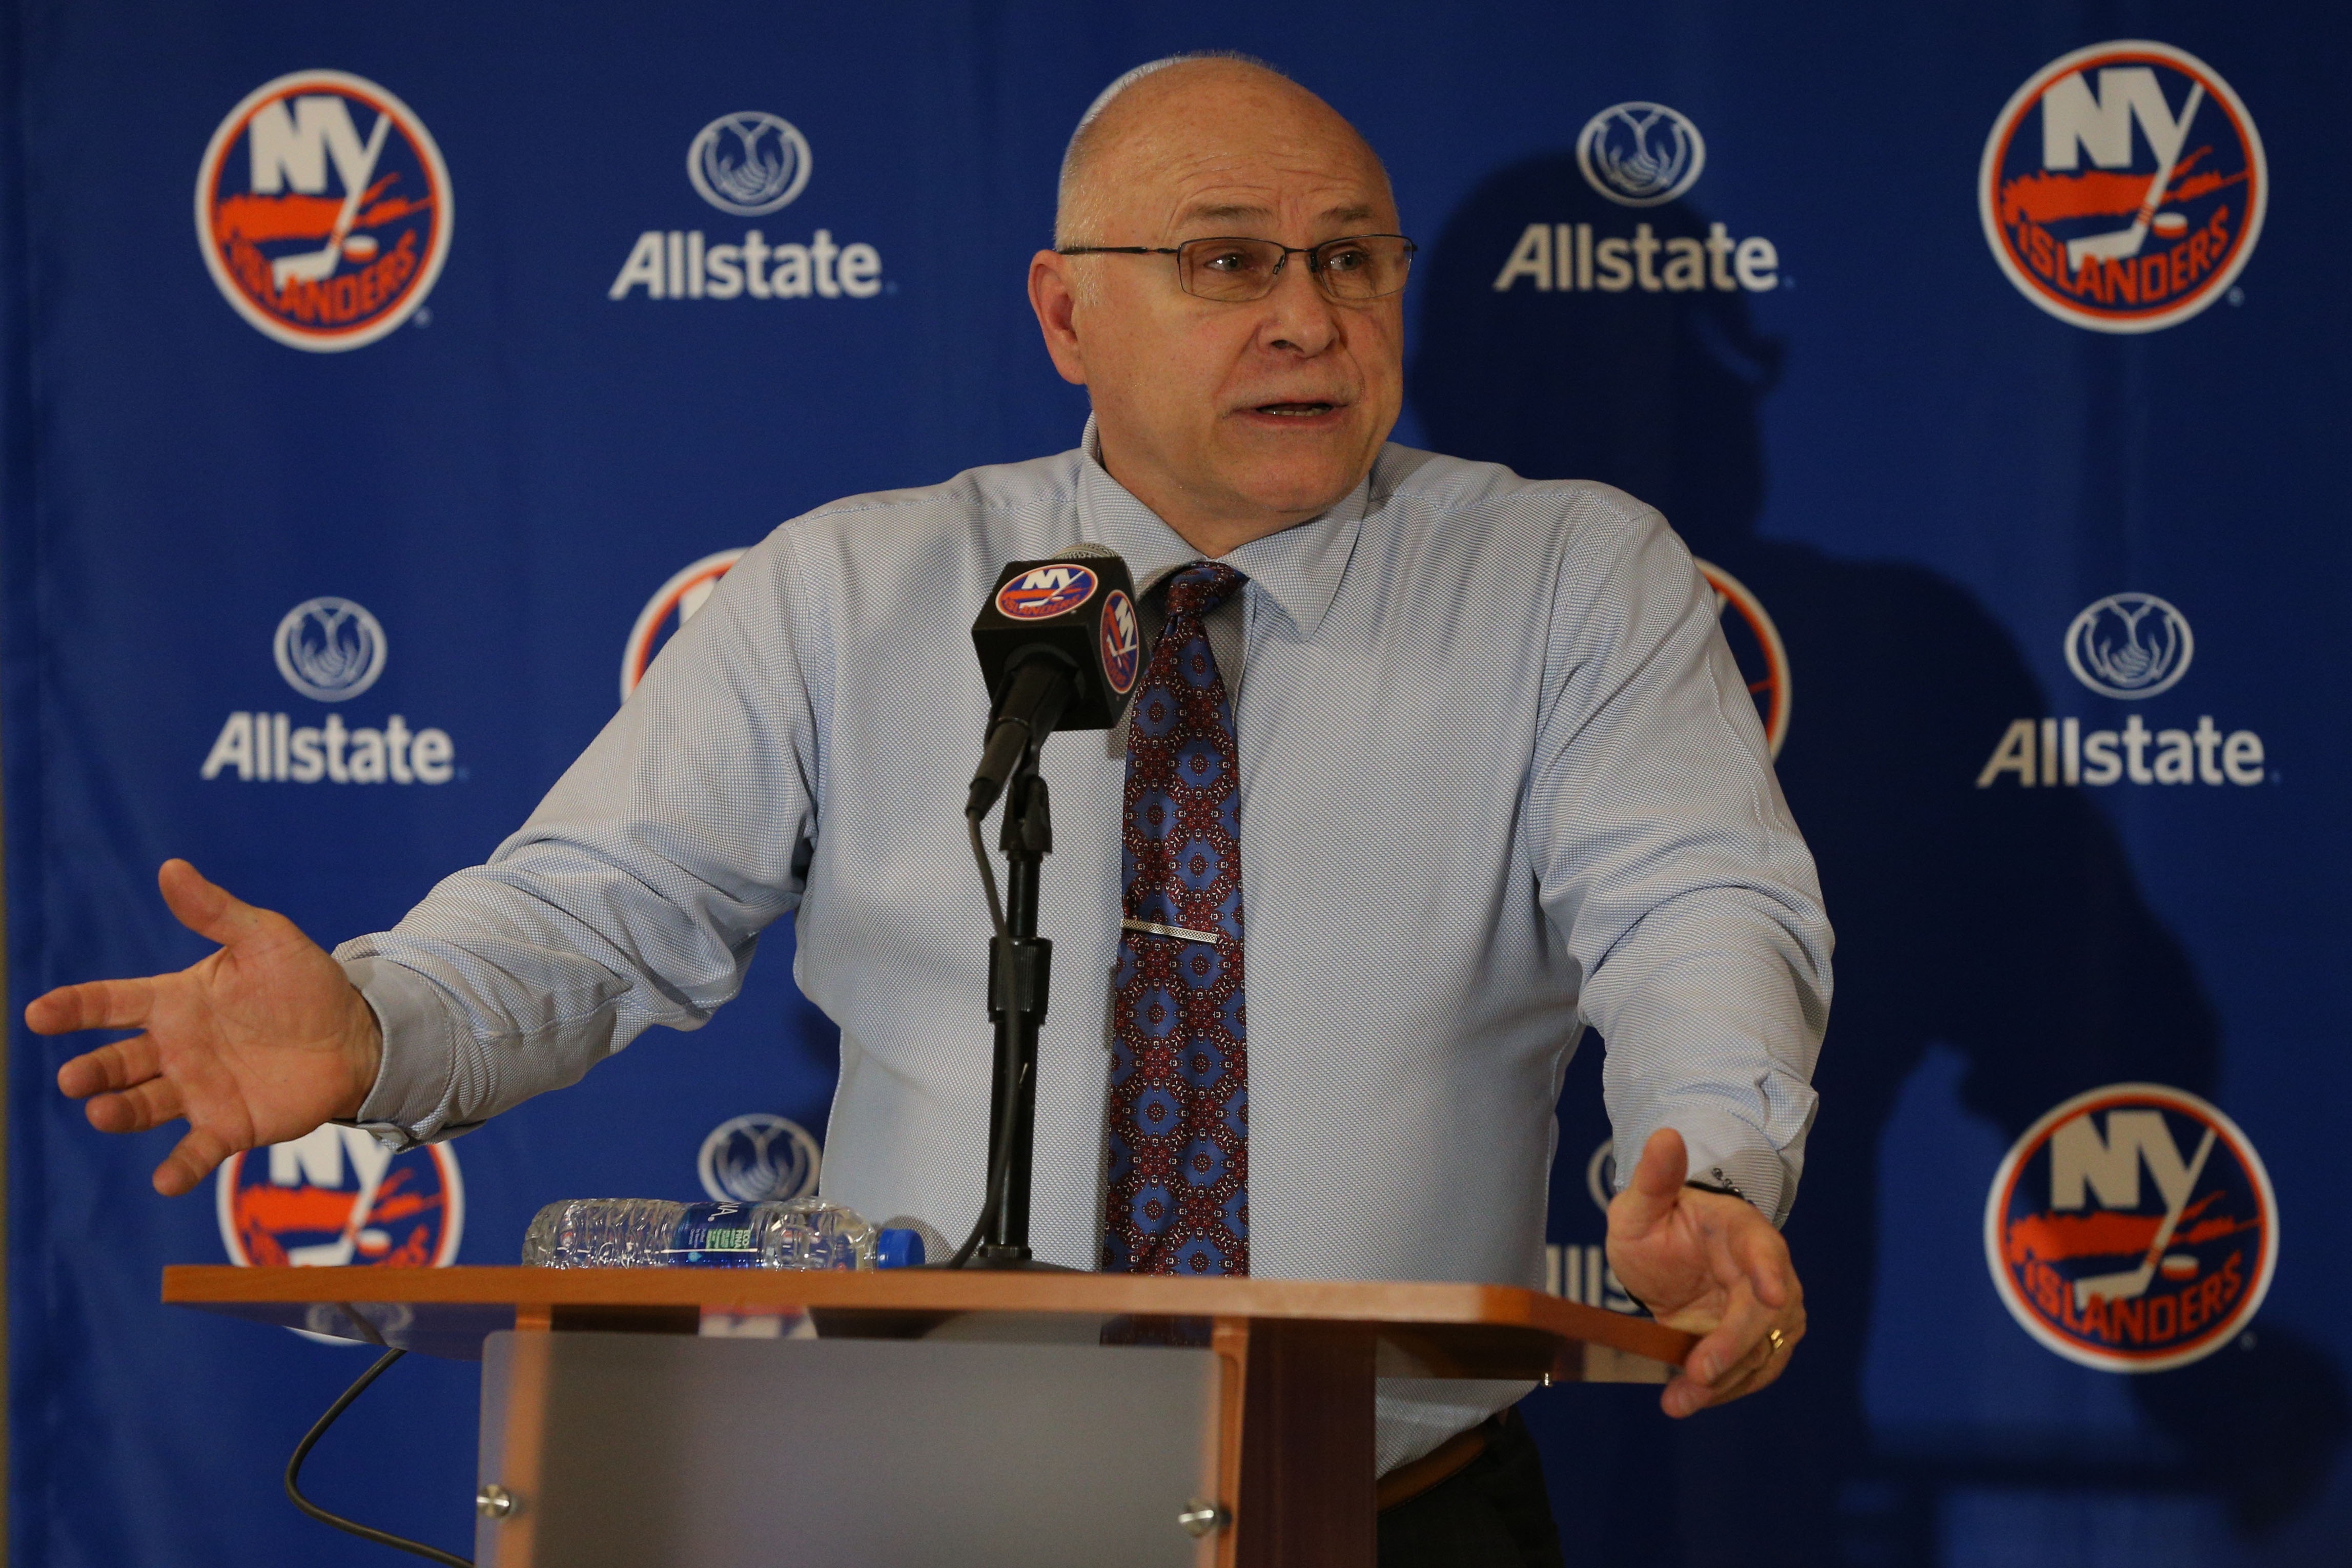 Mar 5, 2019; Uniondale, NY, USA; New York Islanders head coach Barry Trotz speaks after defeating the Ottawa Senators in overtime at Nassau Veterans Memorial Coliseum. The win was the 800th of his career. Mandatory Credit: Brad Penner-USA TODAY Sports